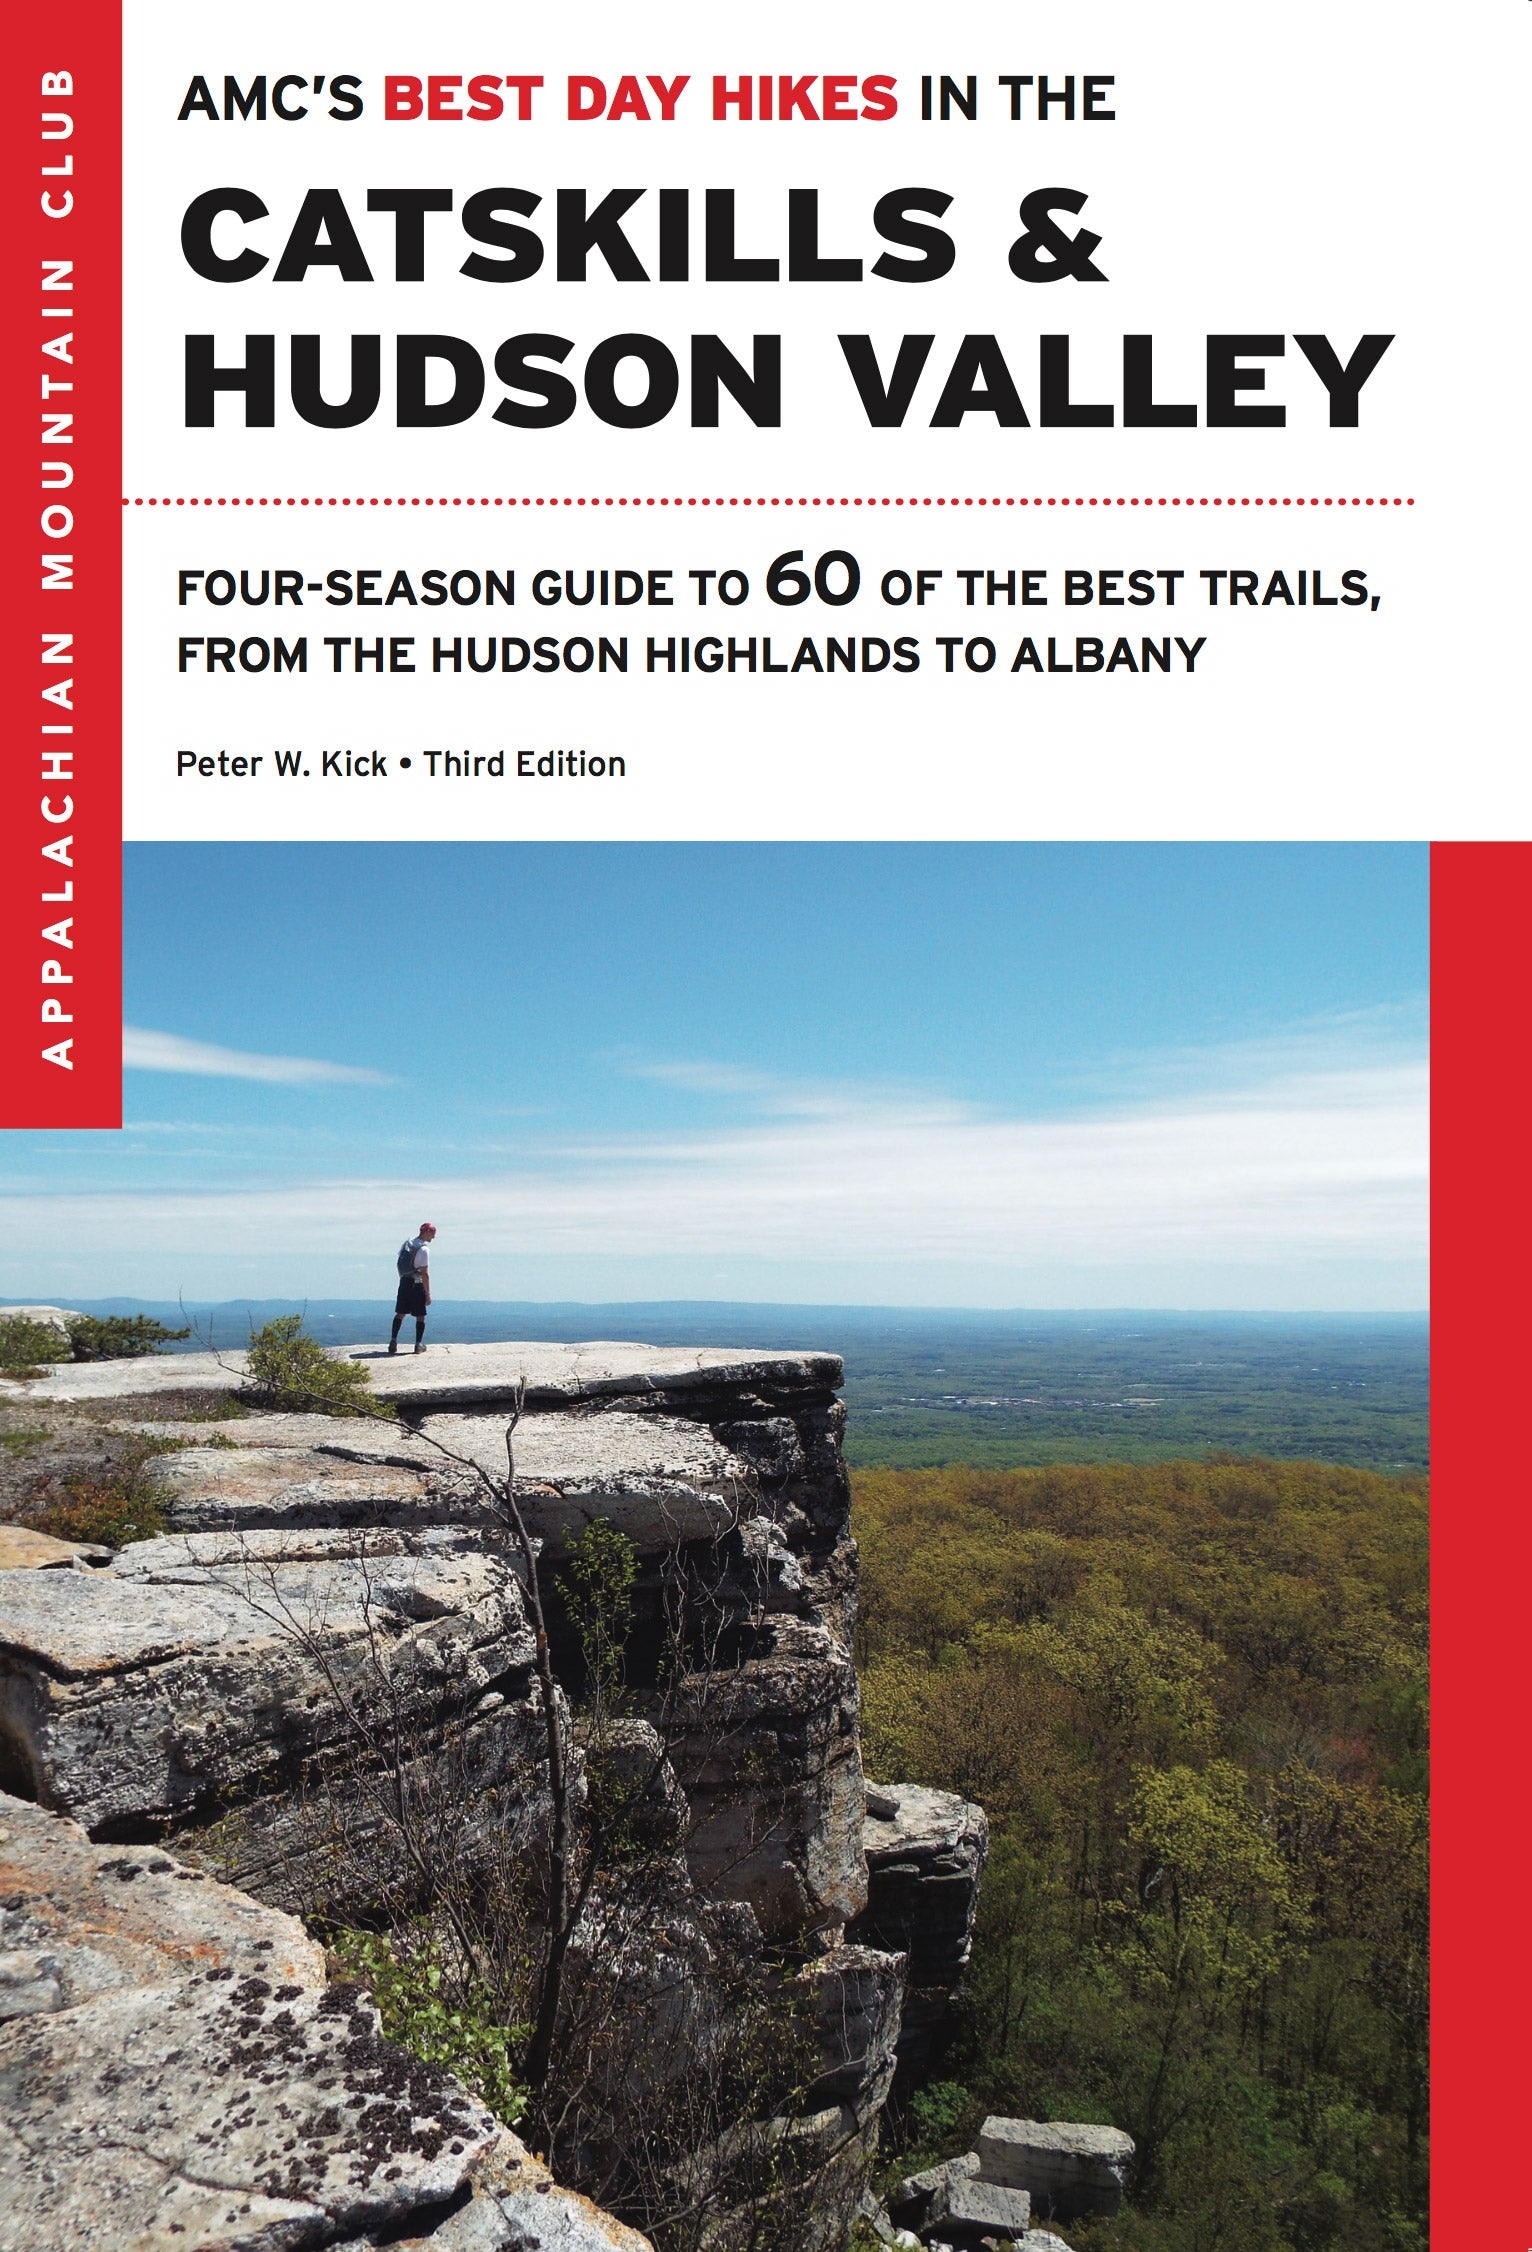 AMC's Best Day Hikes in the Catskills & Hudson Valley, 3rd Edition